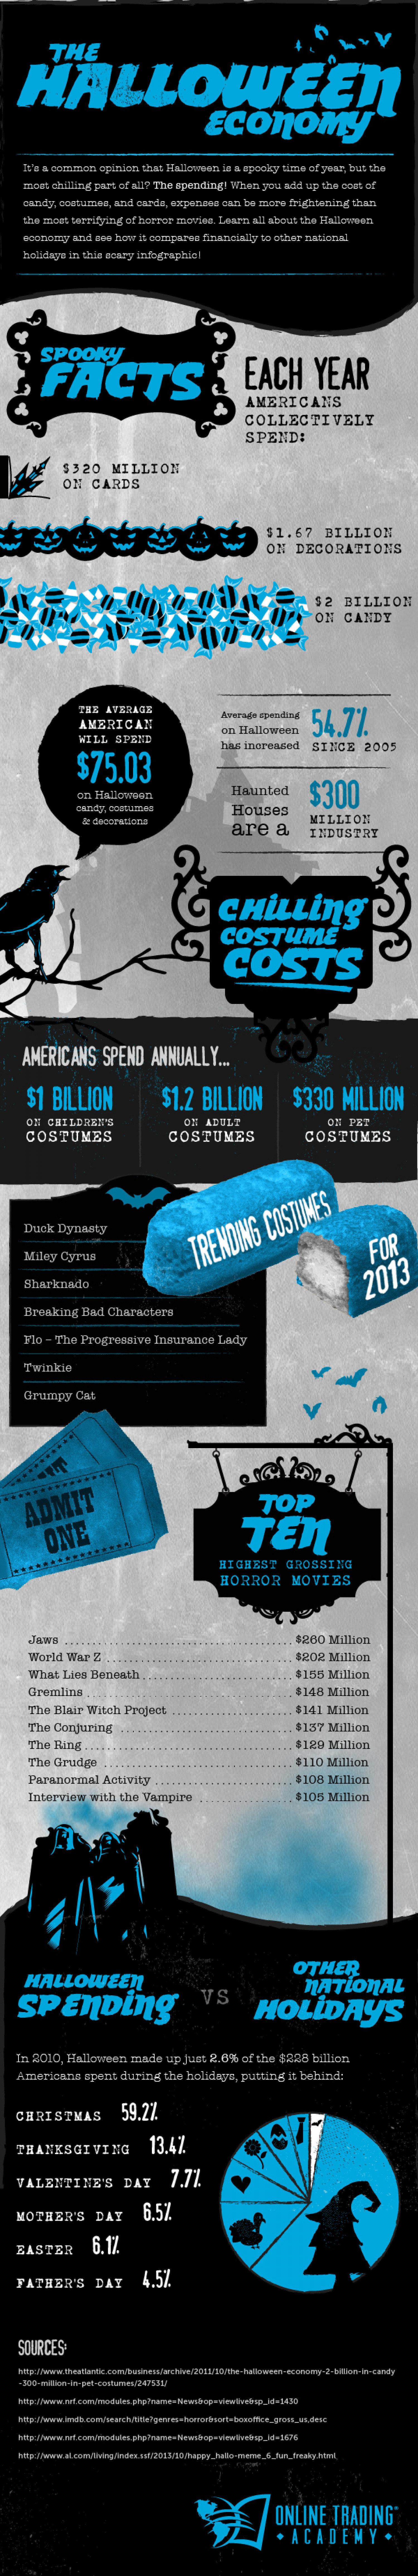 The Halloween Economy Infographic